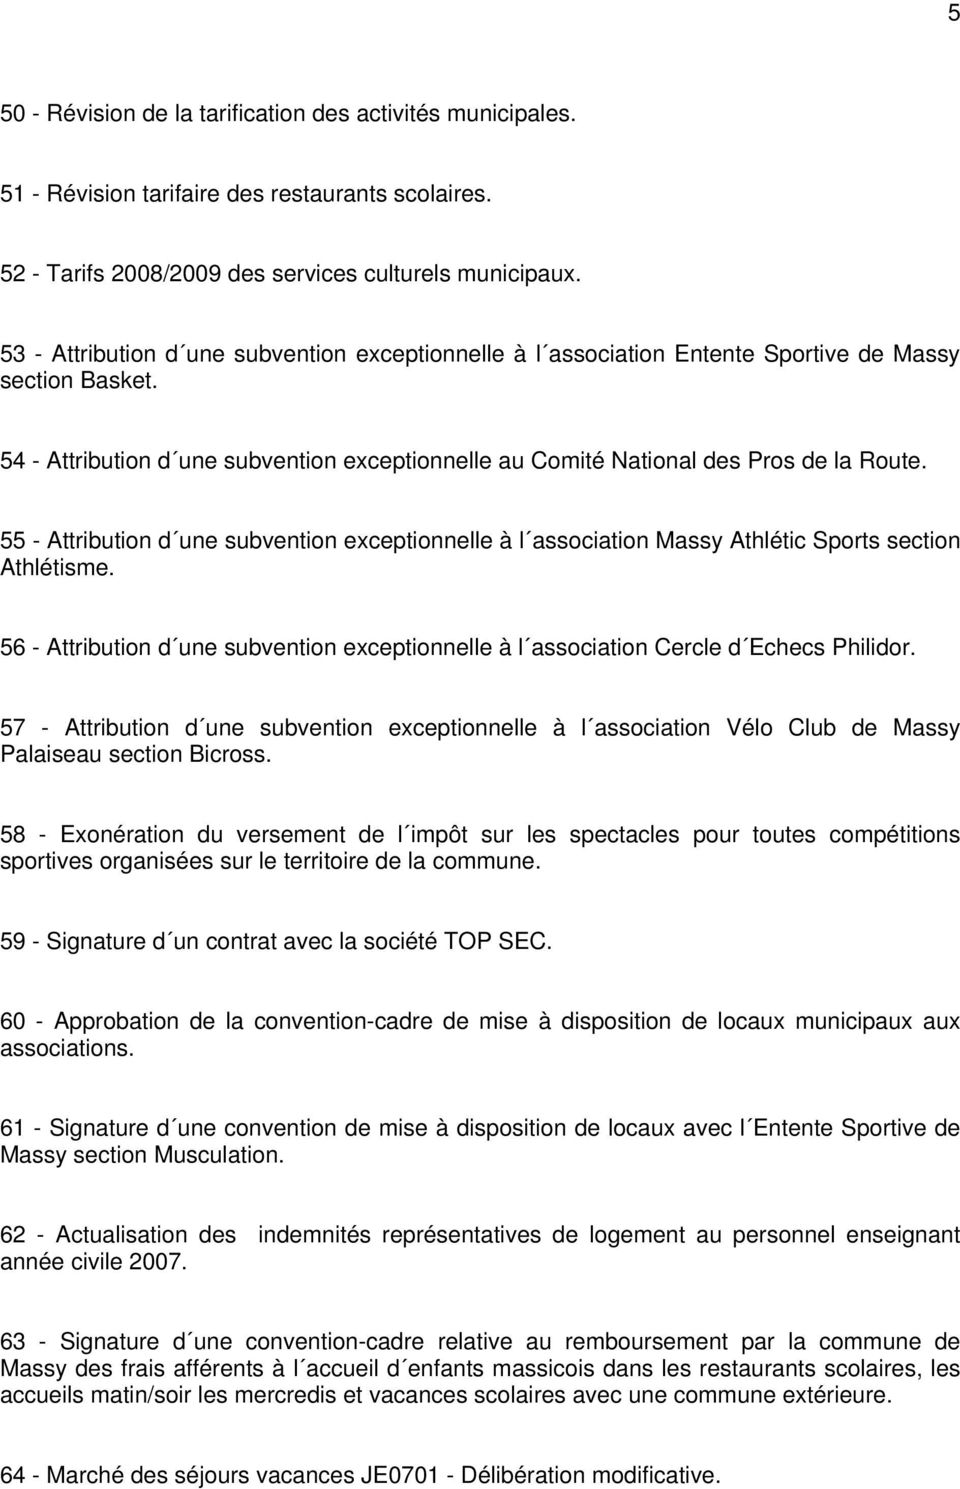 55 - Attribution d une subvention exceptionnelle à l association Massy Athlétic Sports section Athlétisme. 56 - Attribution d une subvention exceptionnelle à l association Cercle d Echecs Philidor.